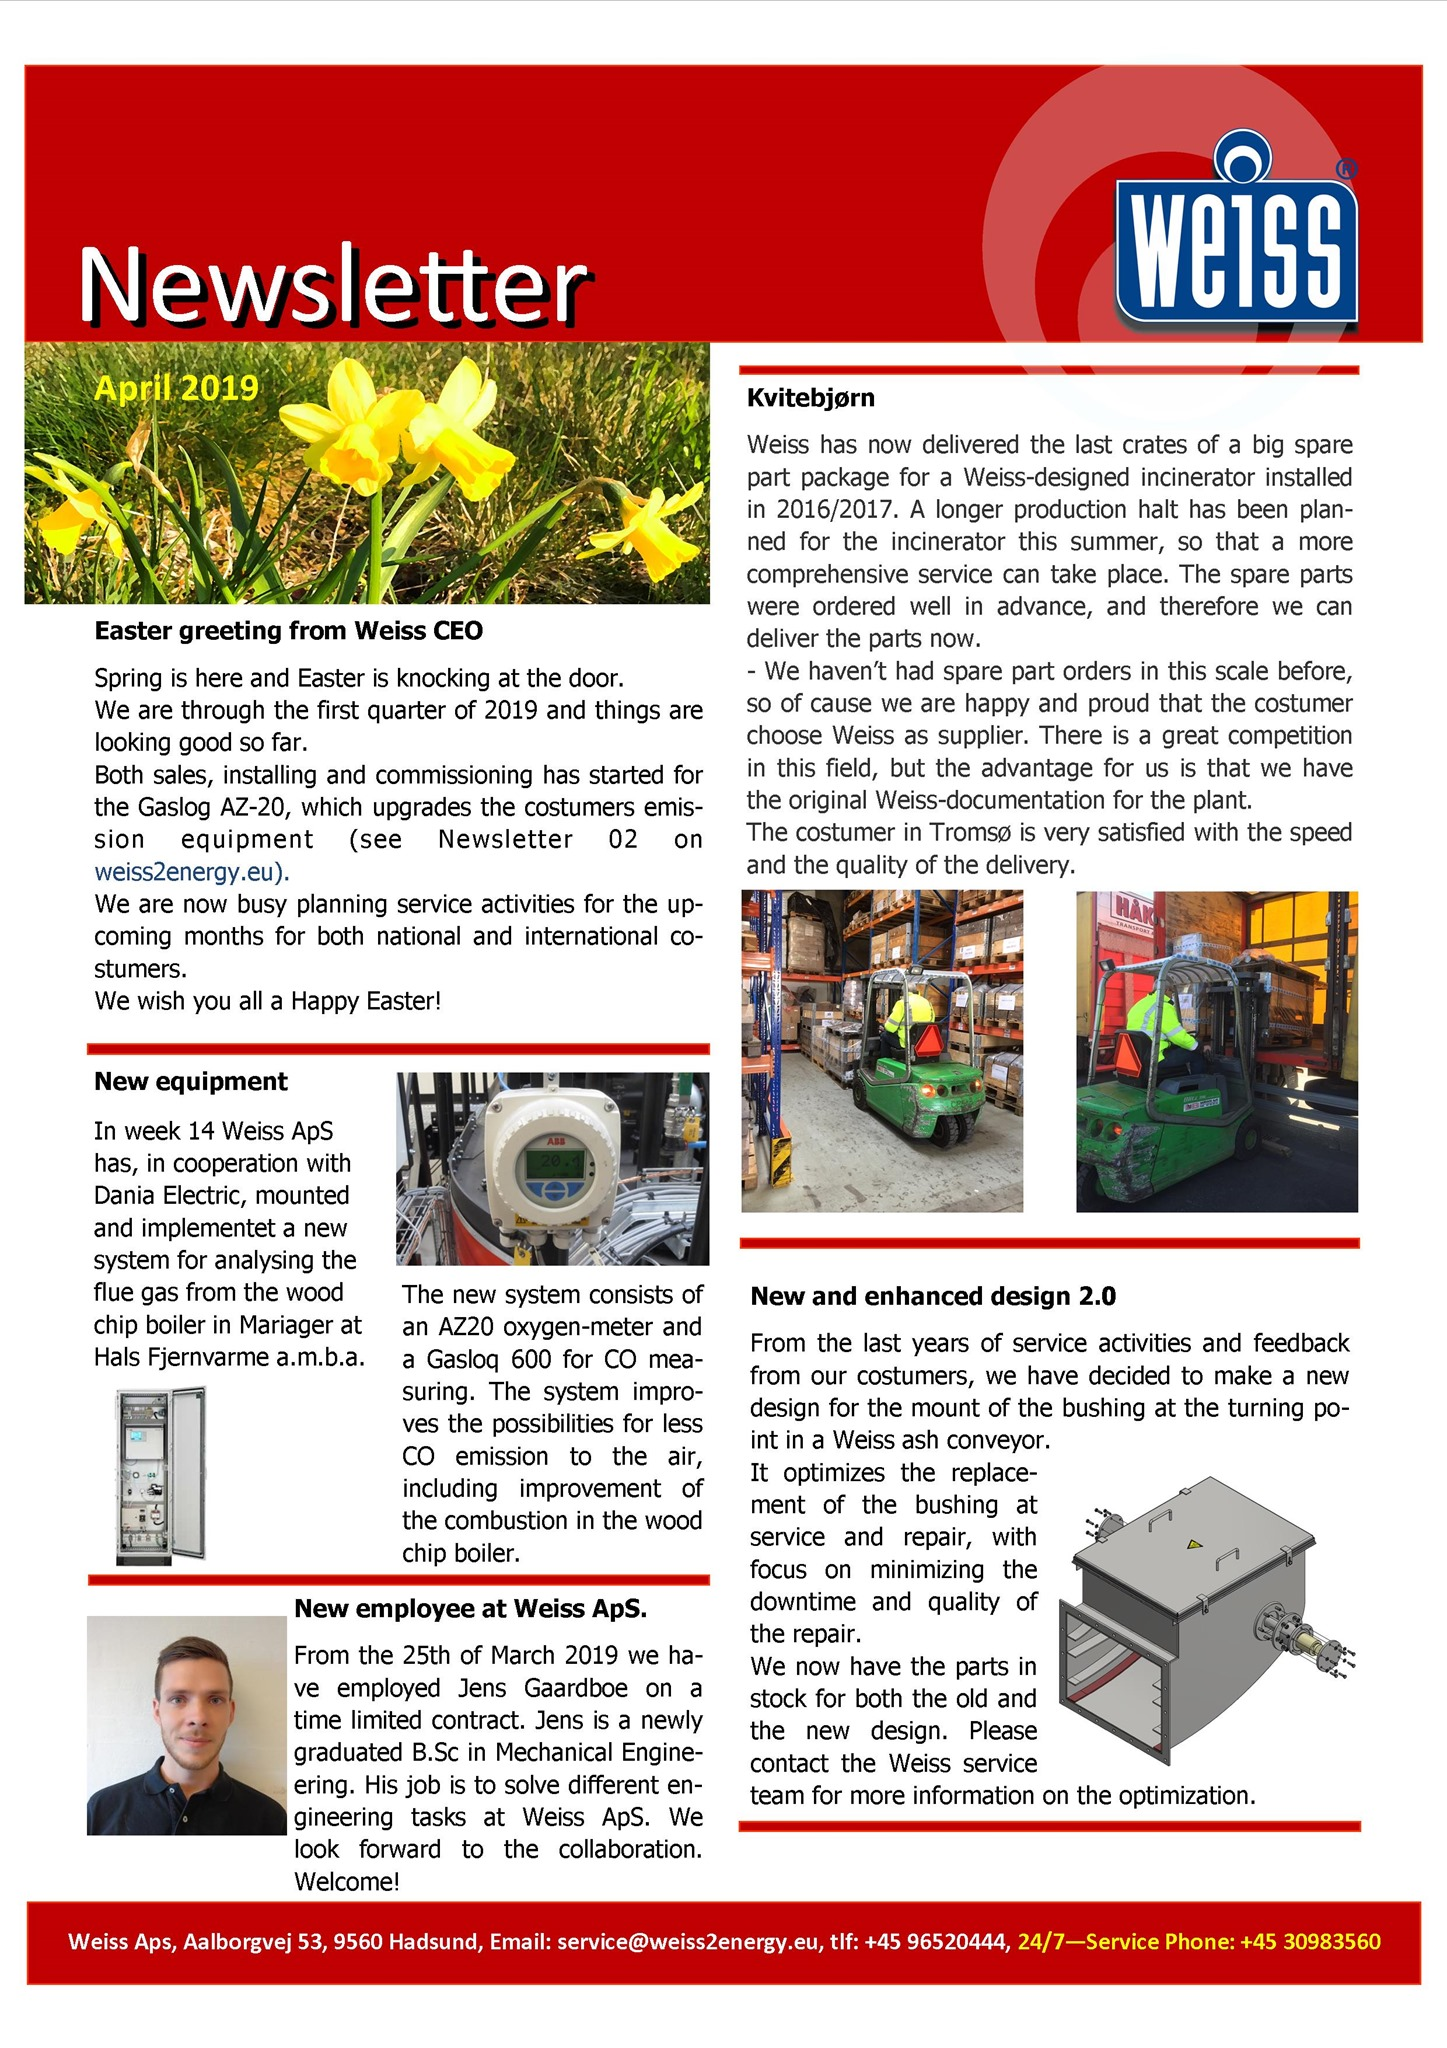 newsletter april 2019-